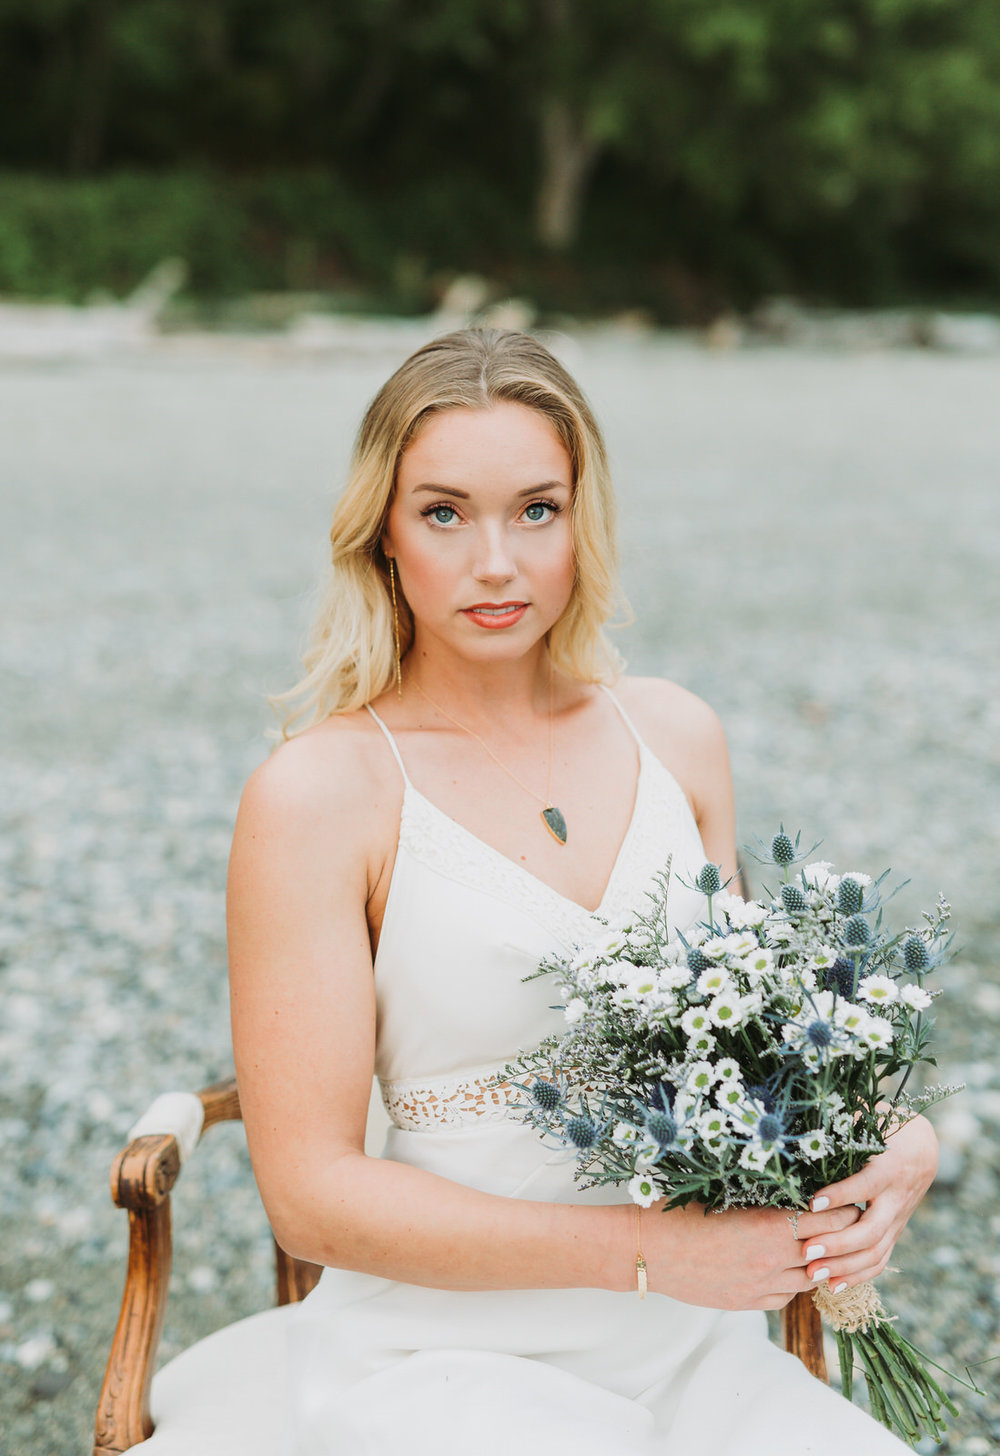 Jennifer Picard Photography - Vancouver Wedding Photographer - Sunshine Coast Wedding Photographer - Bridal InspirationIMG_8864.jpg